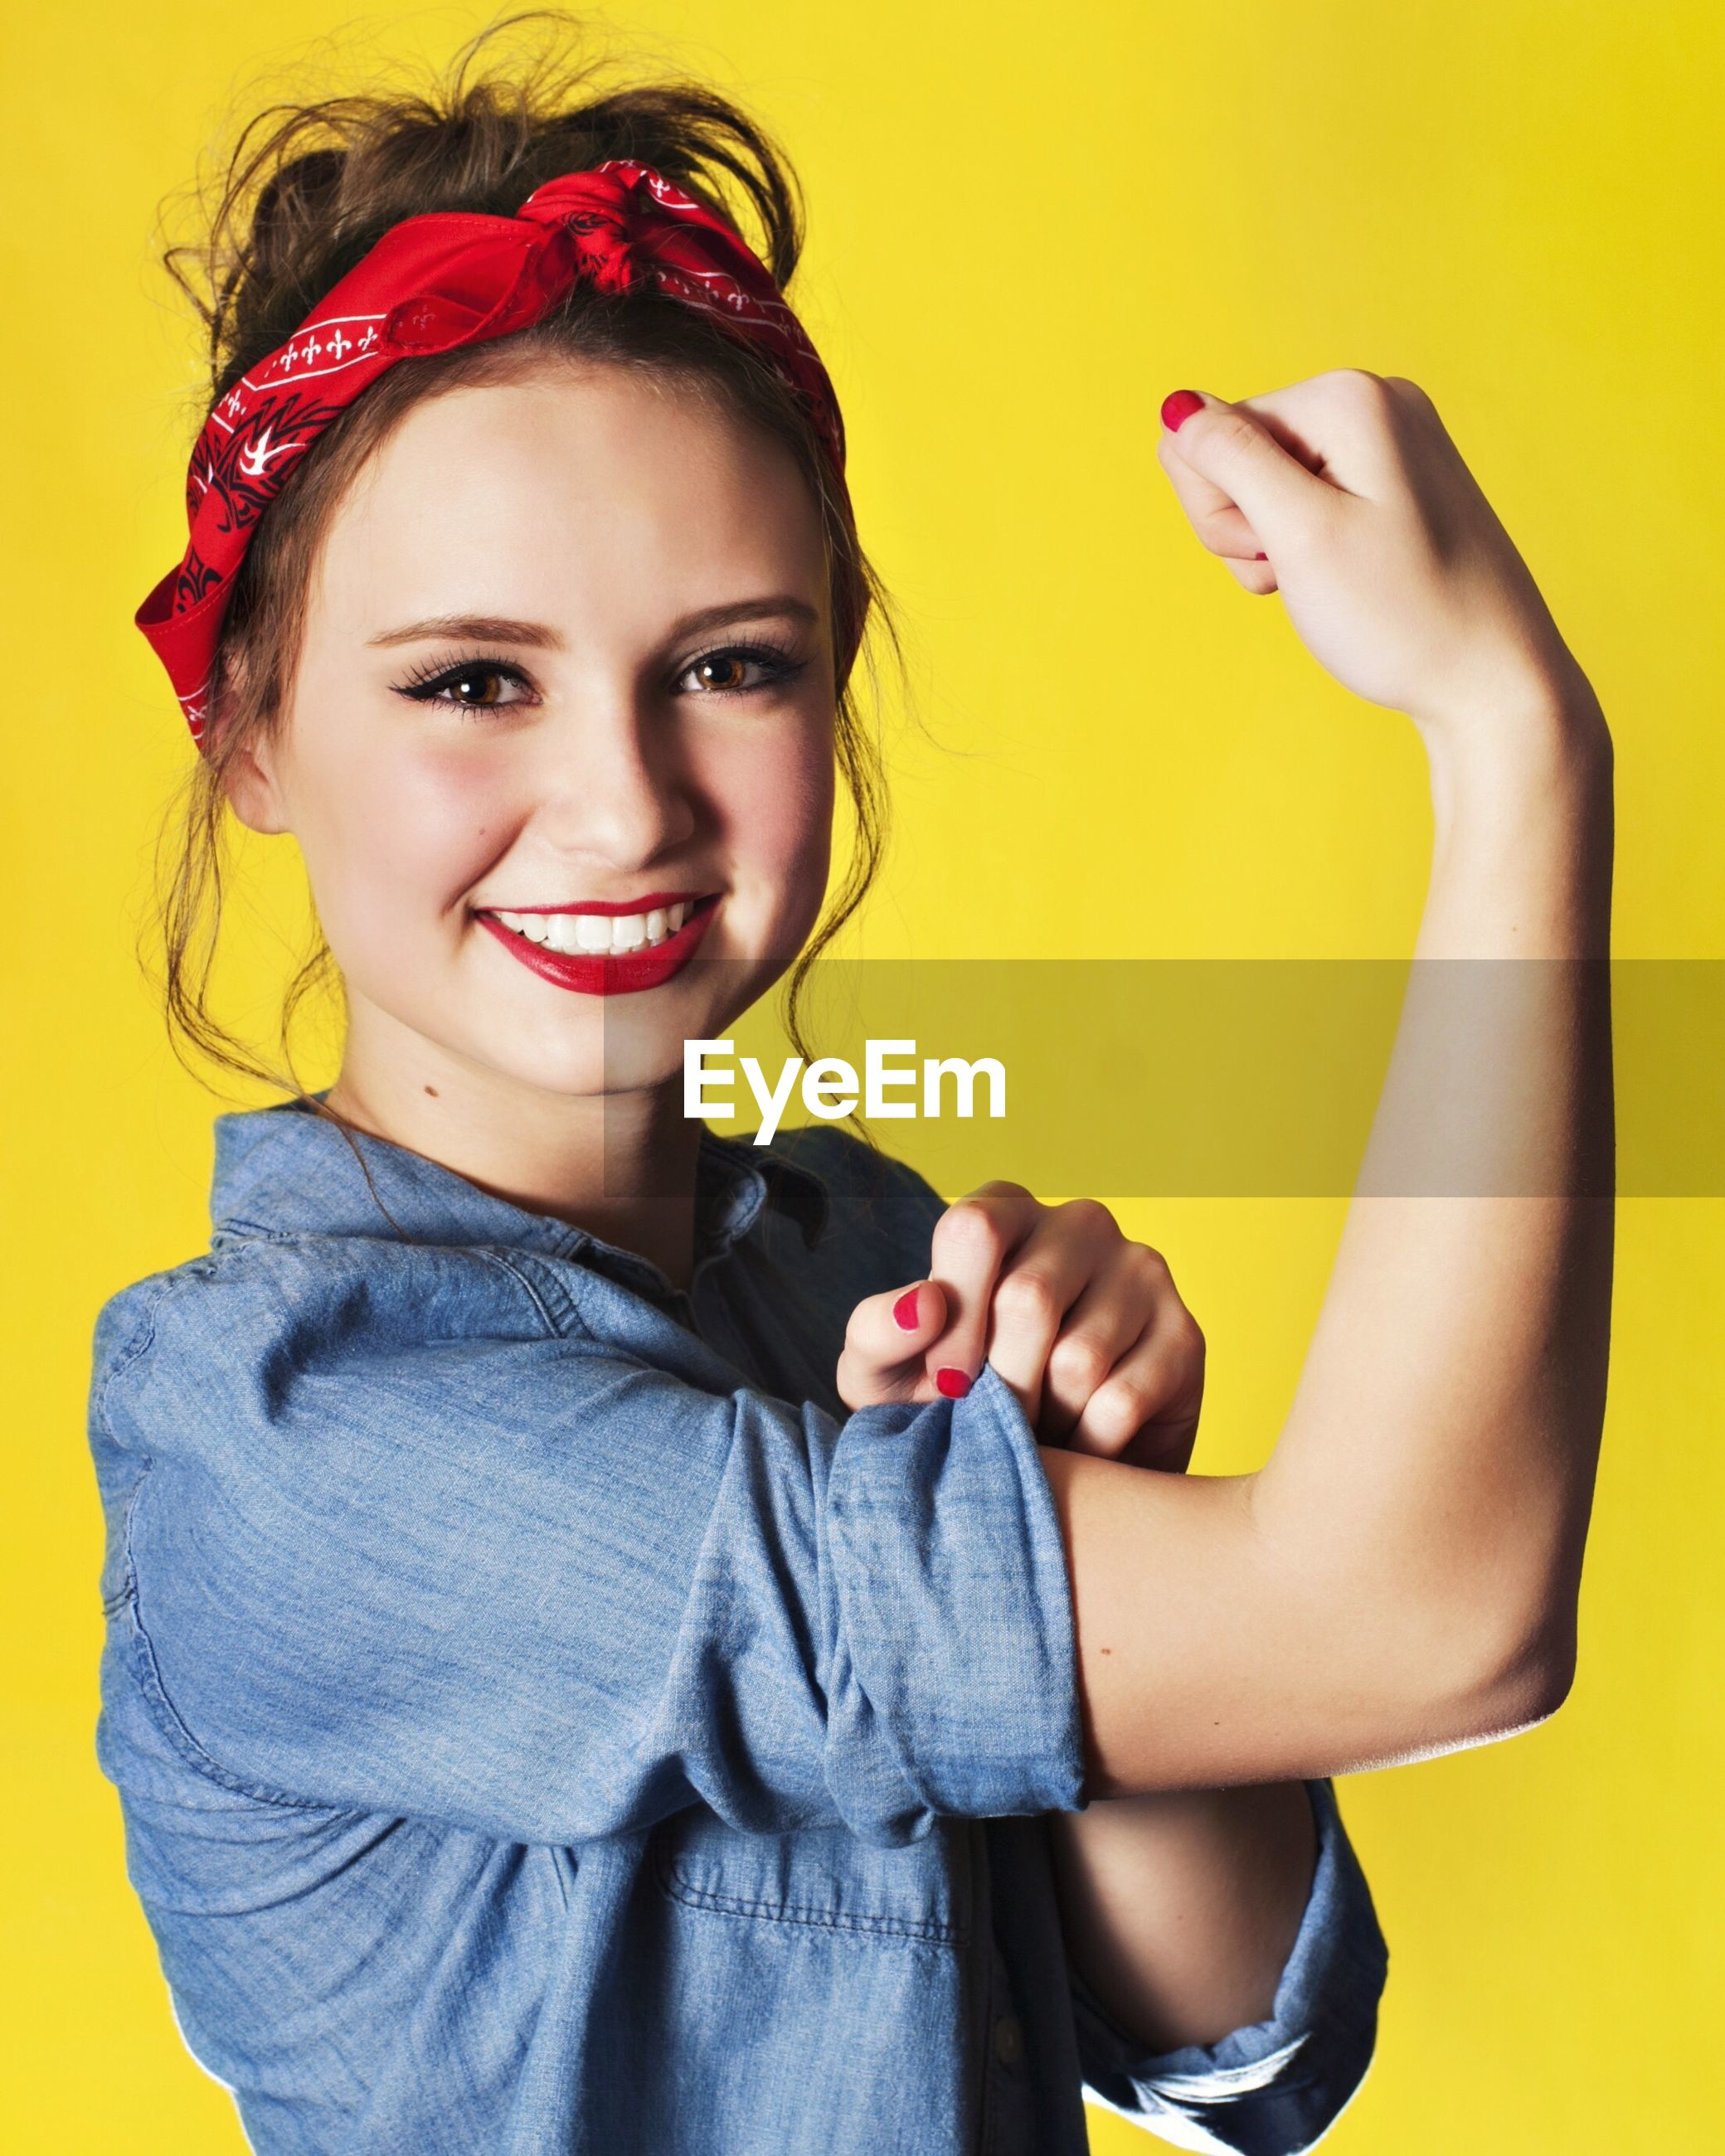 Portrait of smiling teenage girl flexing muscle against yellow background